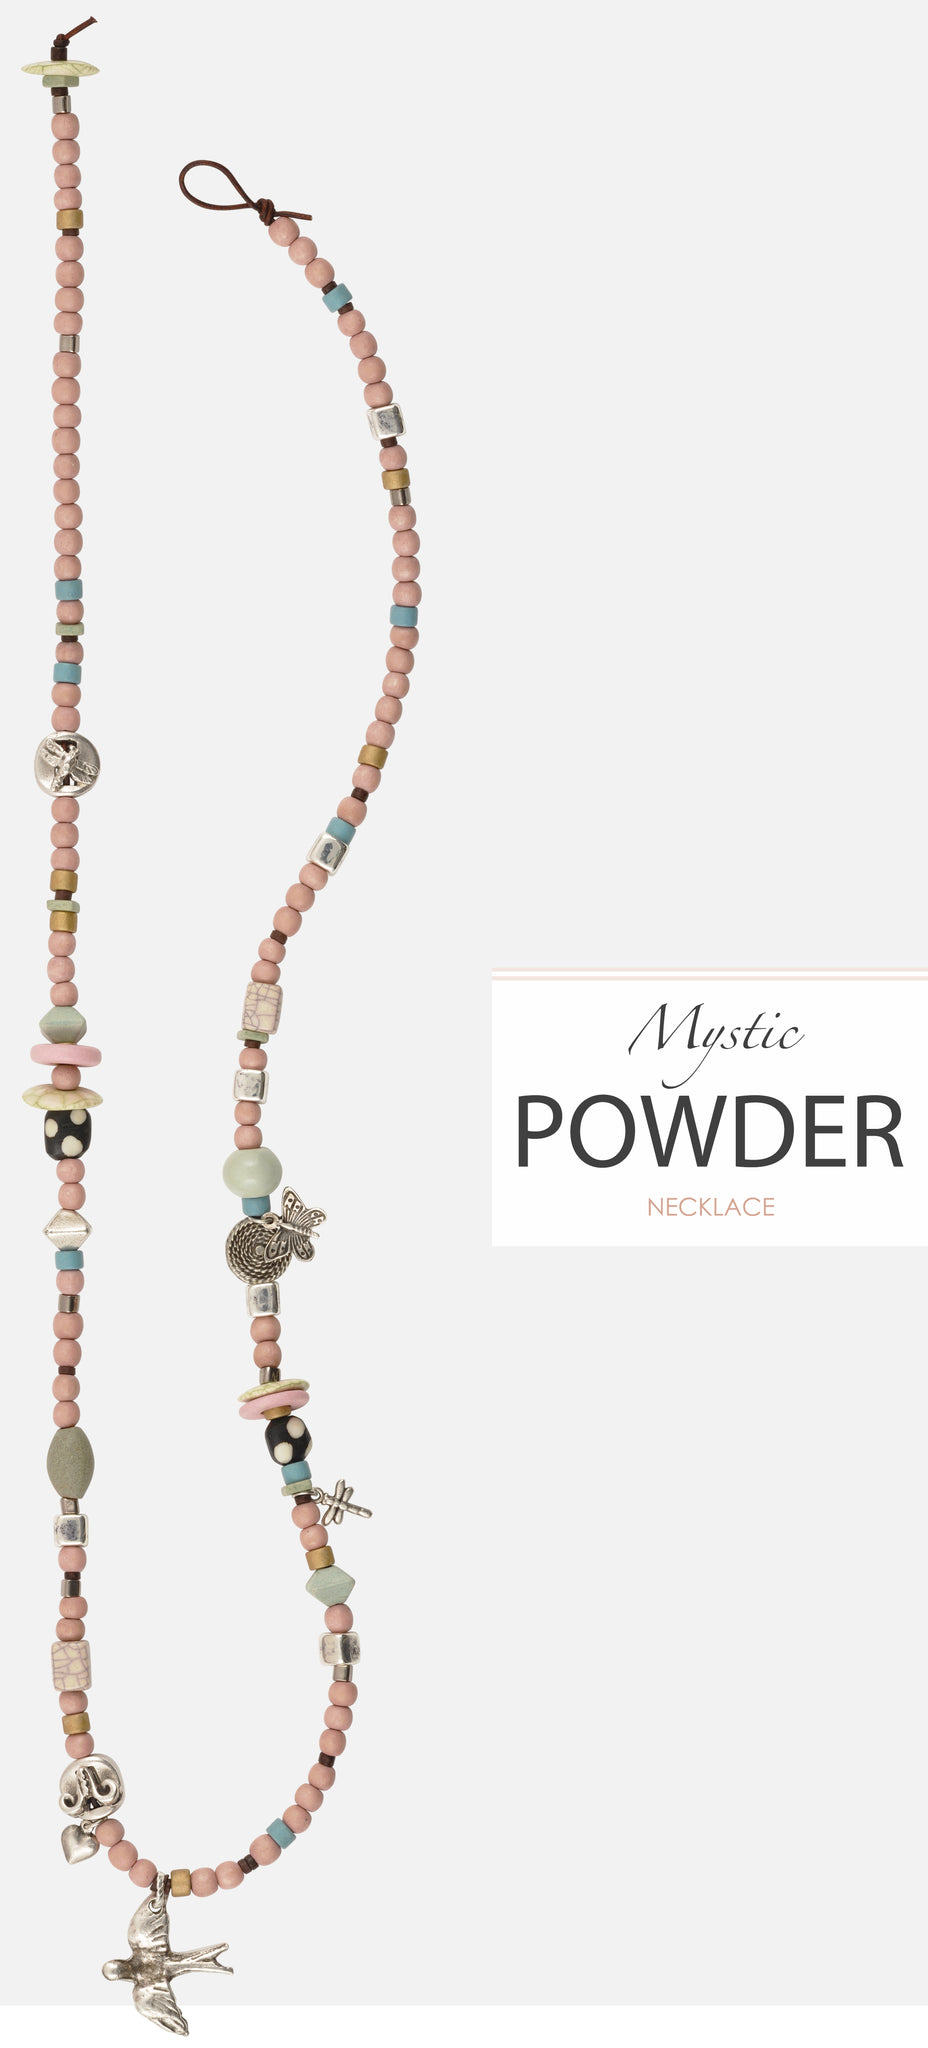 Mystic Powder Necklace Tamara Scott Designs